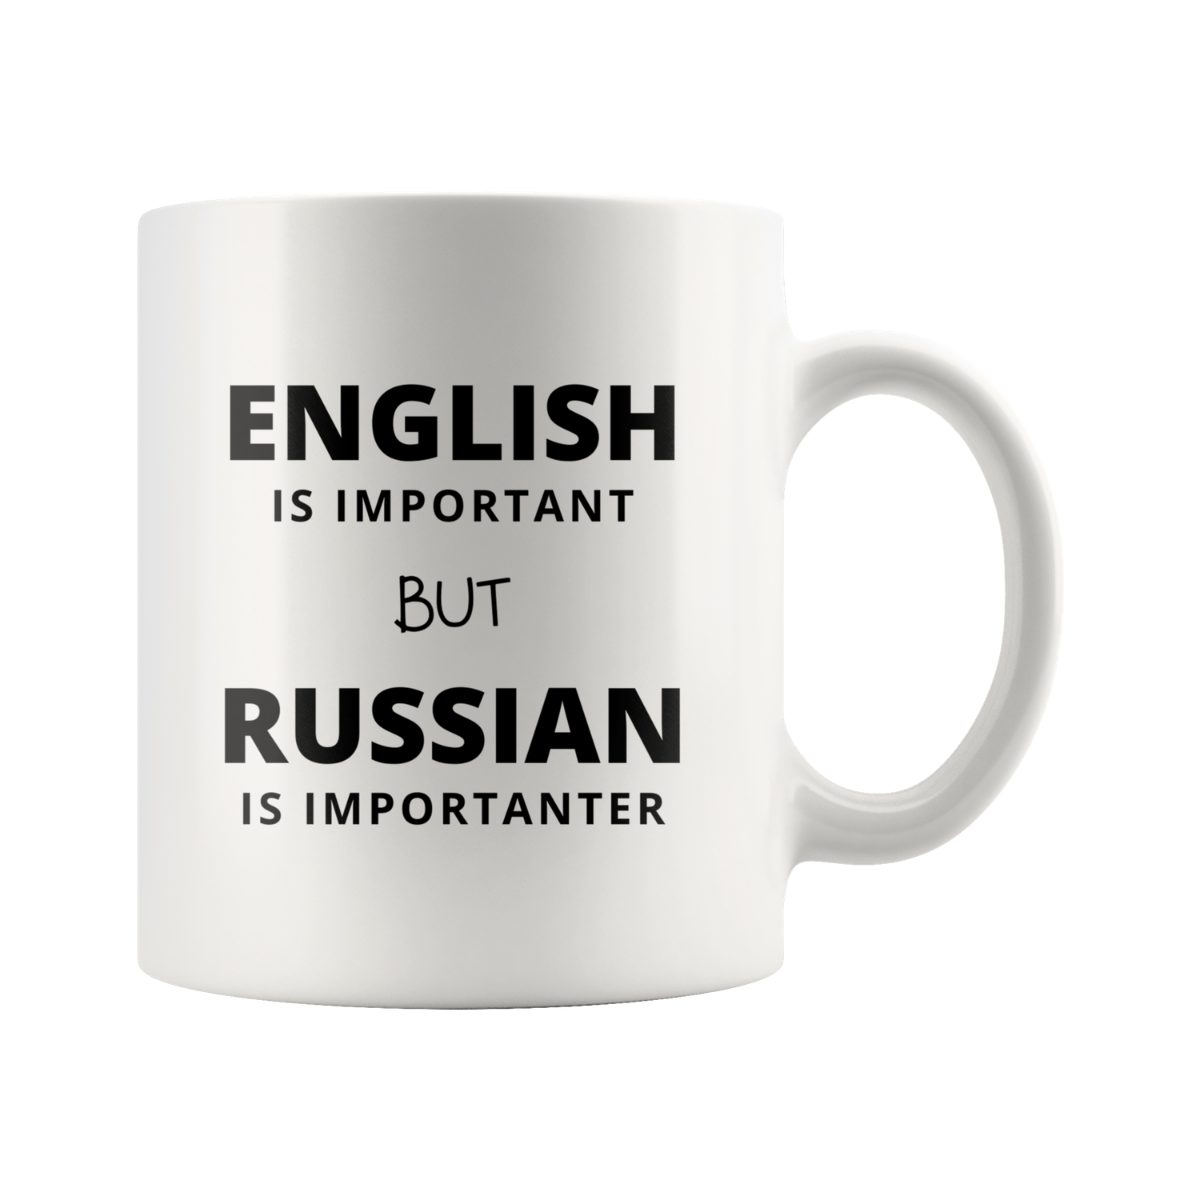 English Is Important but Russian Is Importanter